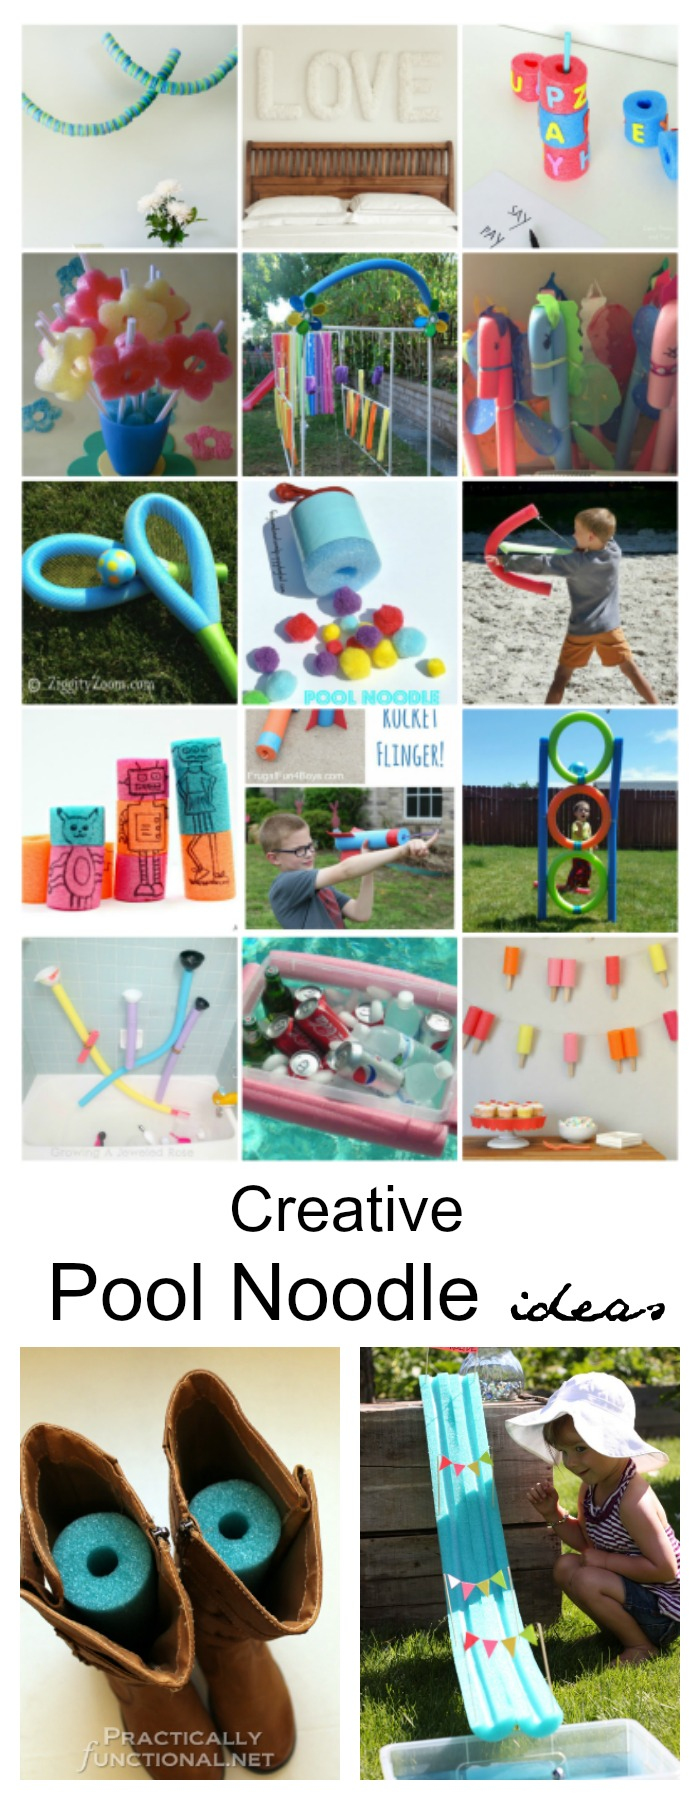 creative-pool-noodle-ideas-pin